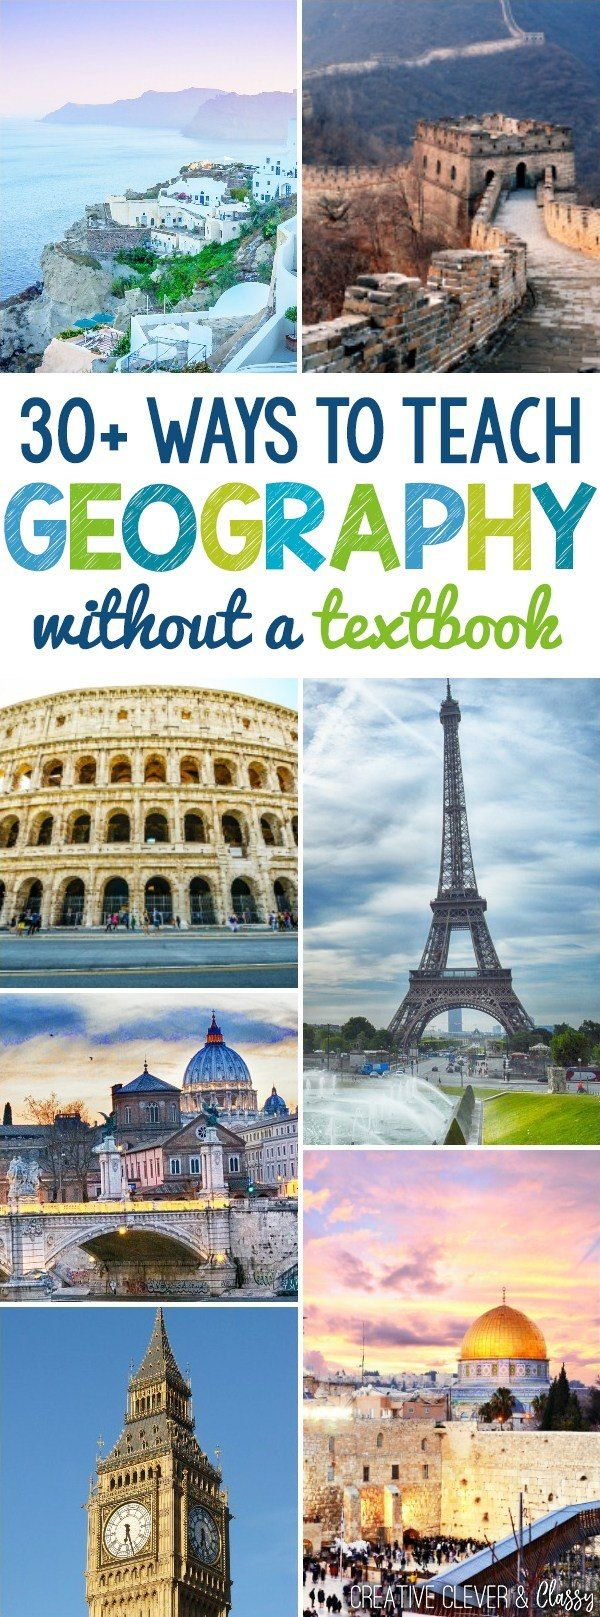 30+ Ways to Teach Geography without a textbook